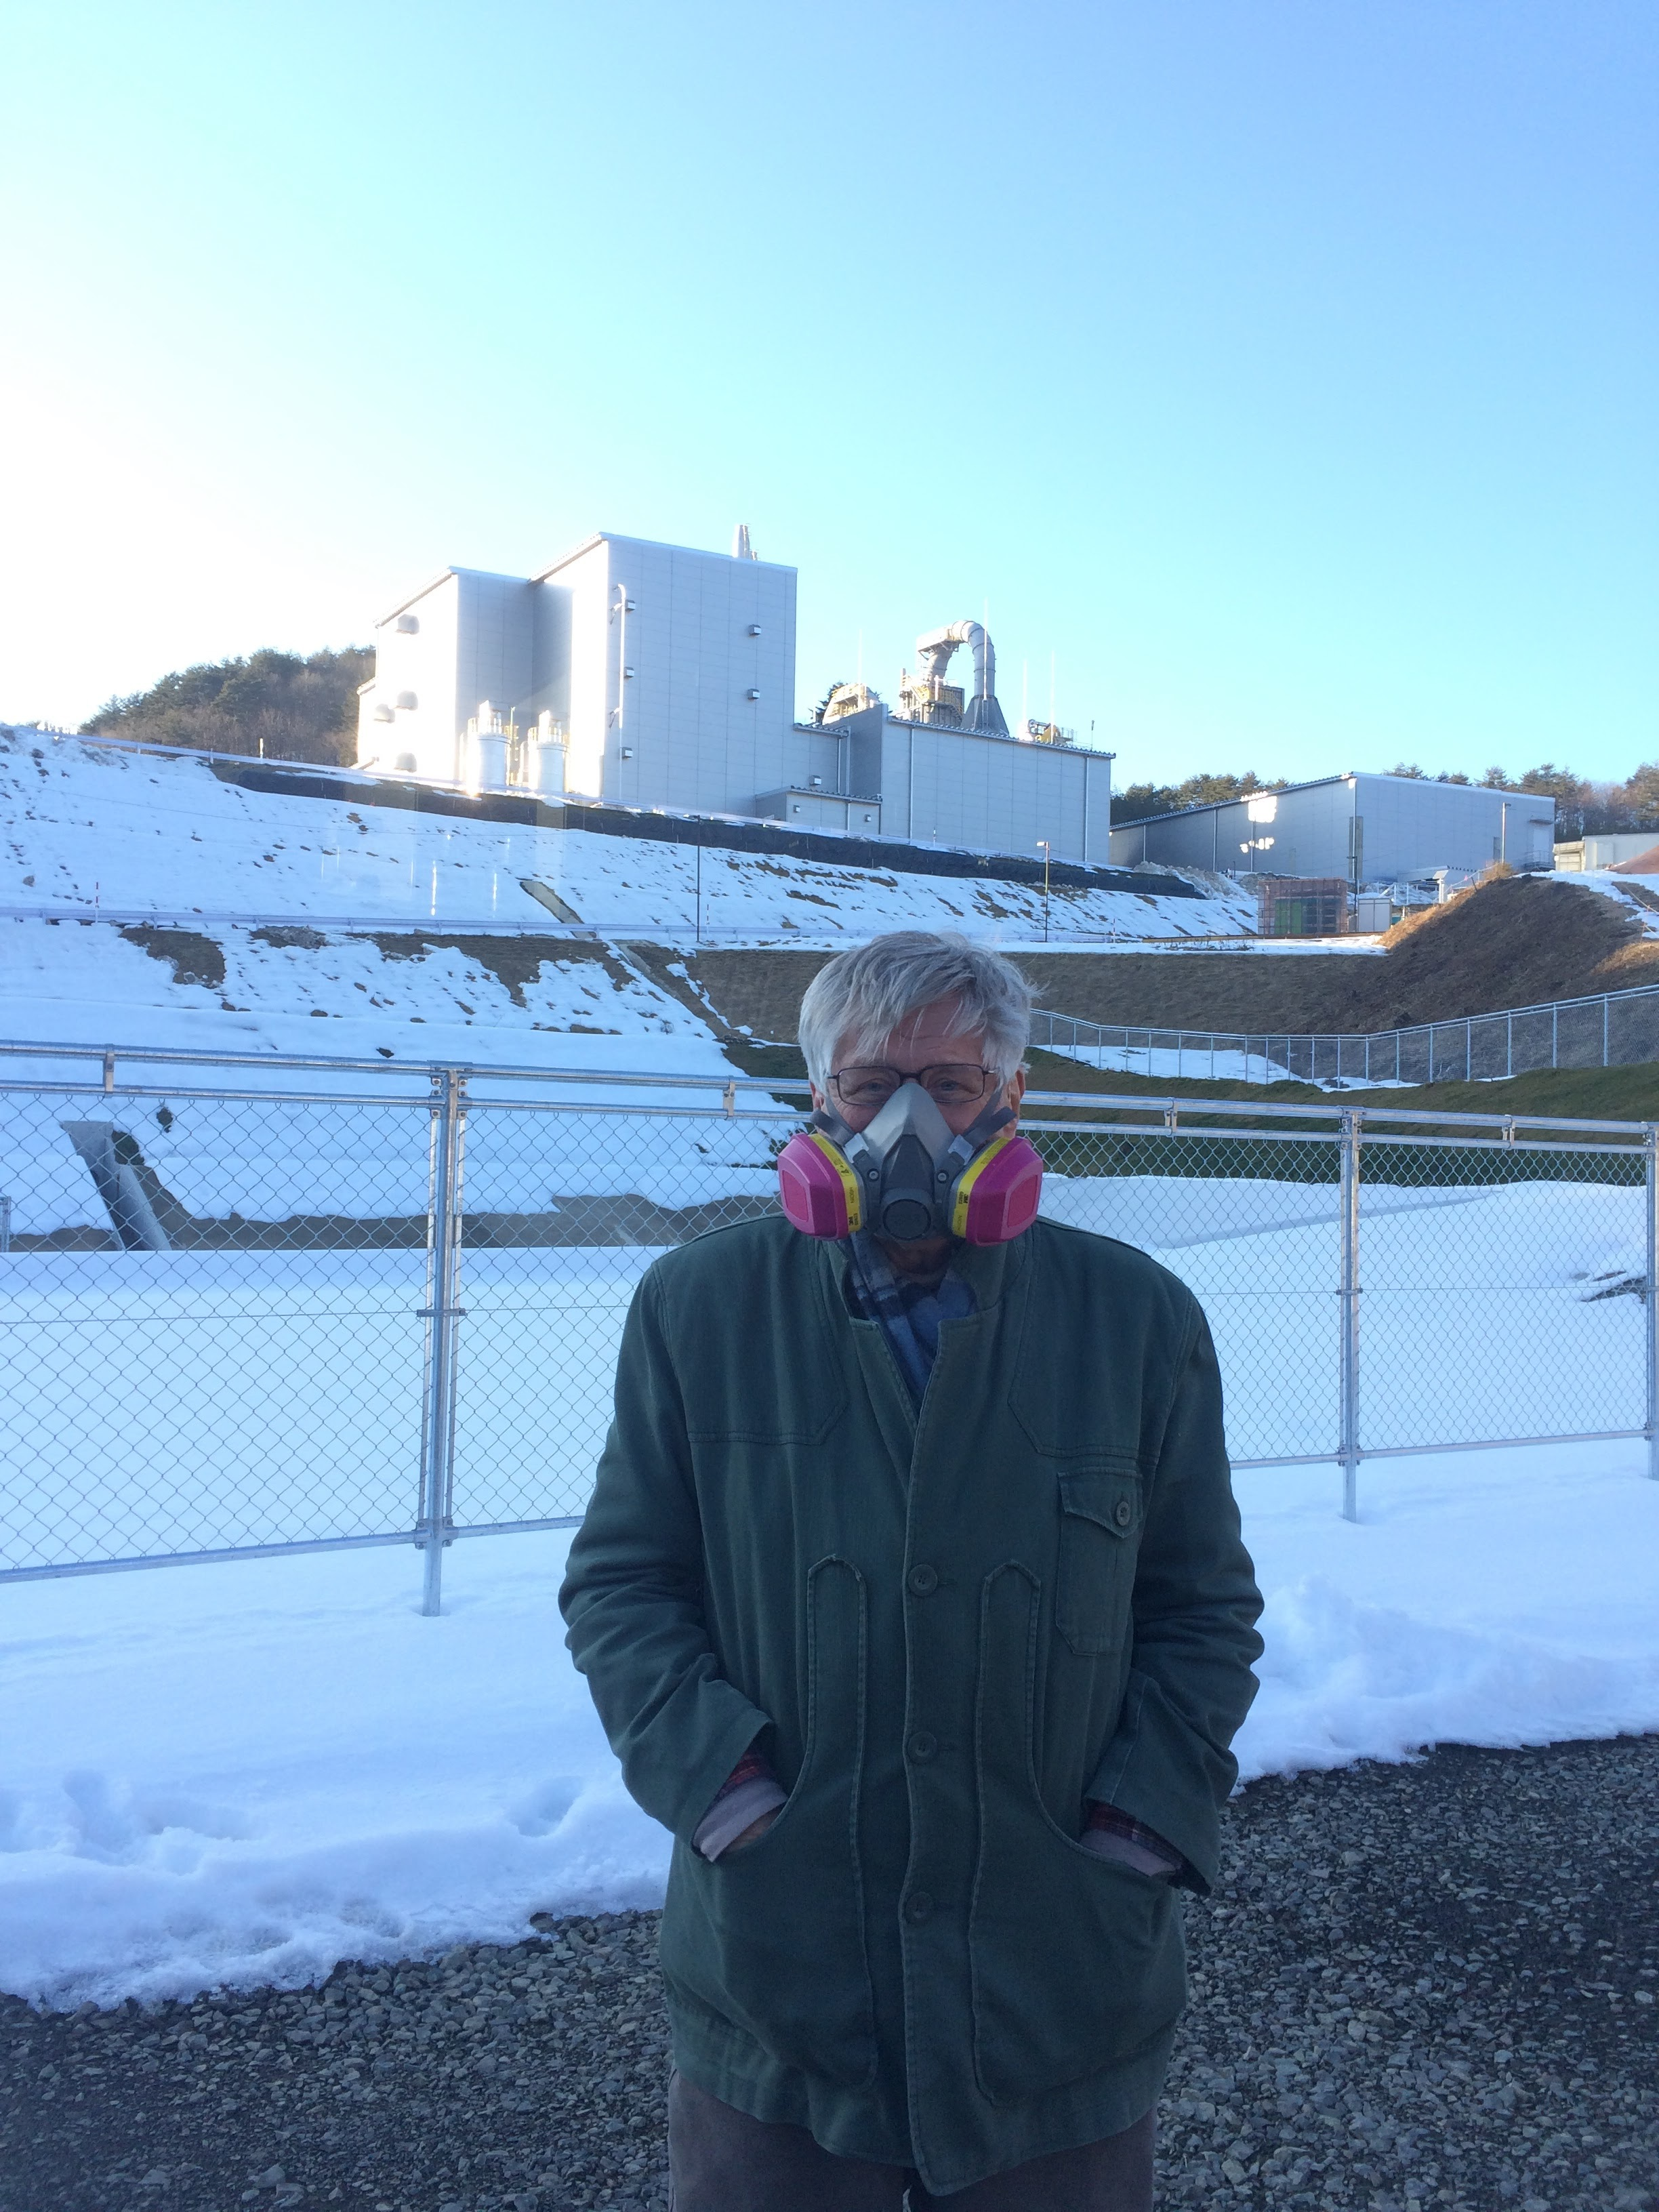 Wearing my respirator in front of the nuclear waste incinerator.